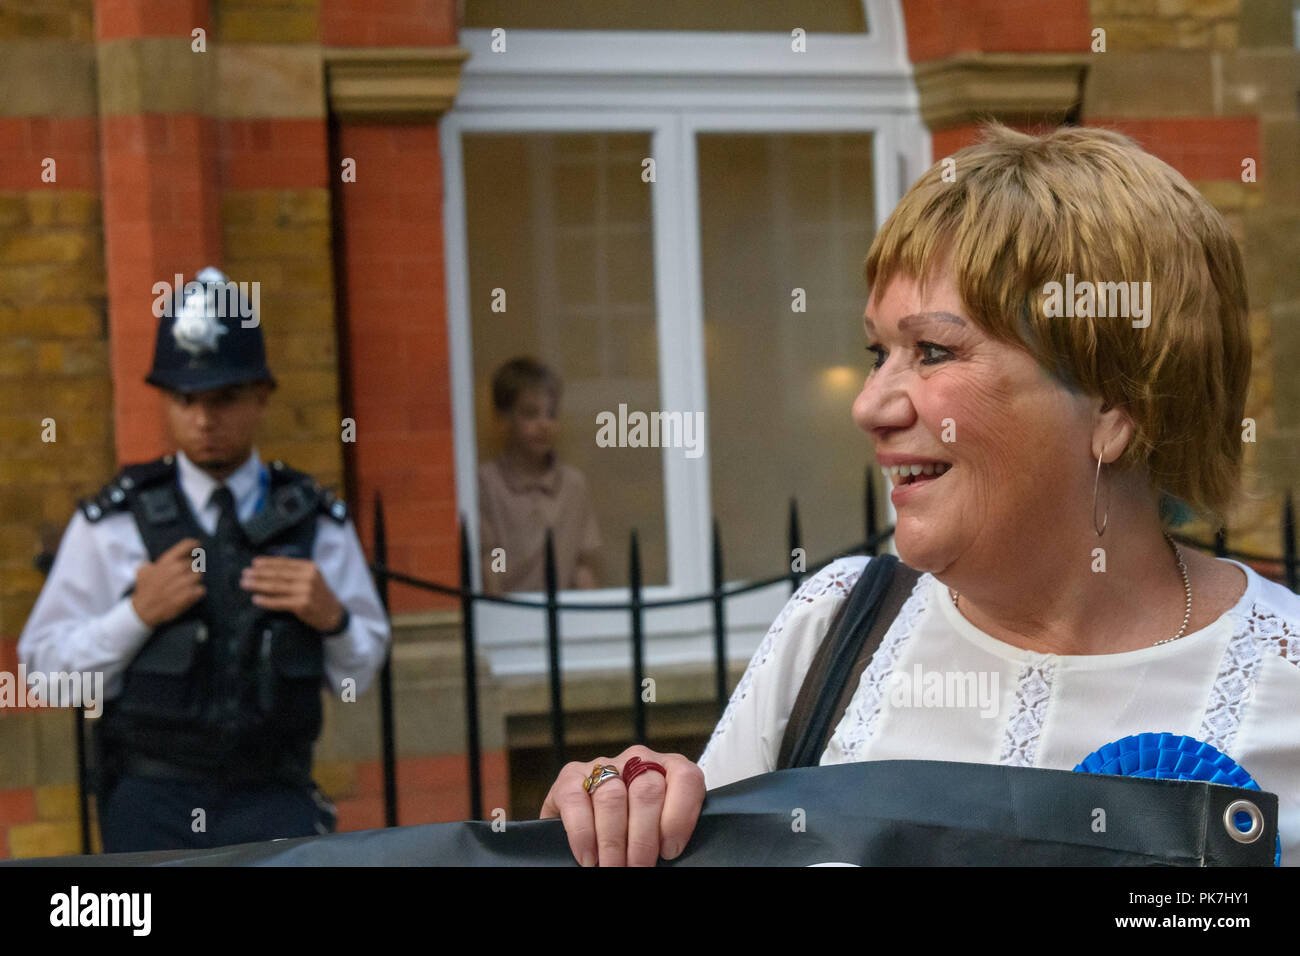 London, UK. 11th Sept 2018. One of the Rees-Mogg children watches from the window as Class War protest  at the £5.6m Westminster town house of Jacob Rees-Mogg. Jane Nicholl is dressed as Nanny Cook, Jacob Rees-Mogg's nanny who now looks after him and his six children. They say she ceased to exist as an independent human 50 years ago and has been subsumed into the Mogg family as if she was being confined in the tower of a gothic mansion. The protest starred former Class War Westminster candidate Adam Clifford as Jacob Rees-Mogg and Jane Nicholl as Nanny Crook, as well as a giant penis and offer Stock Photo